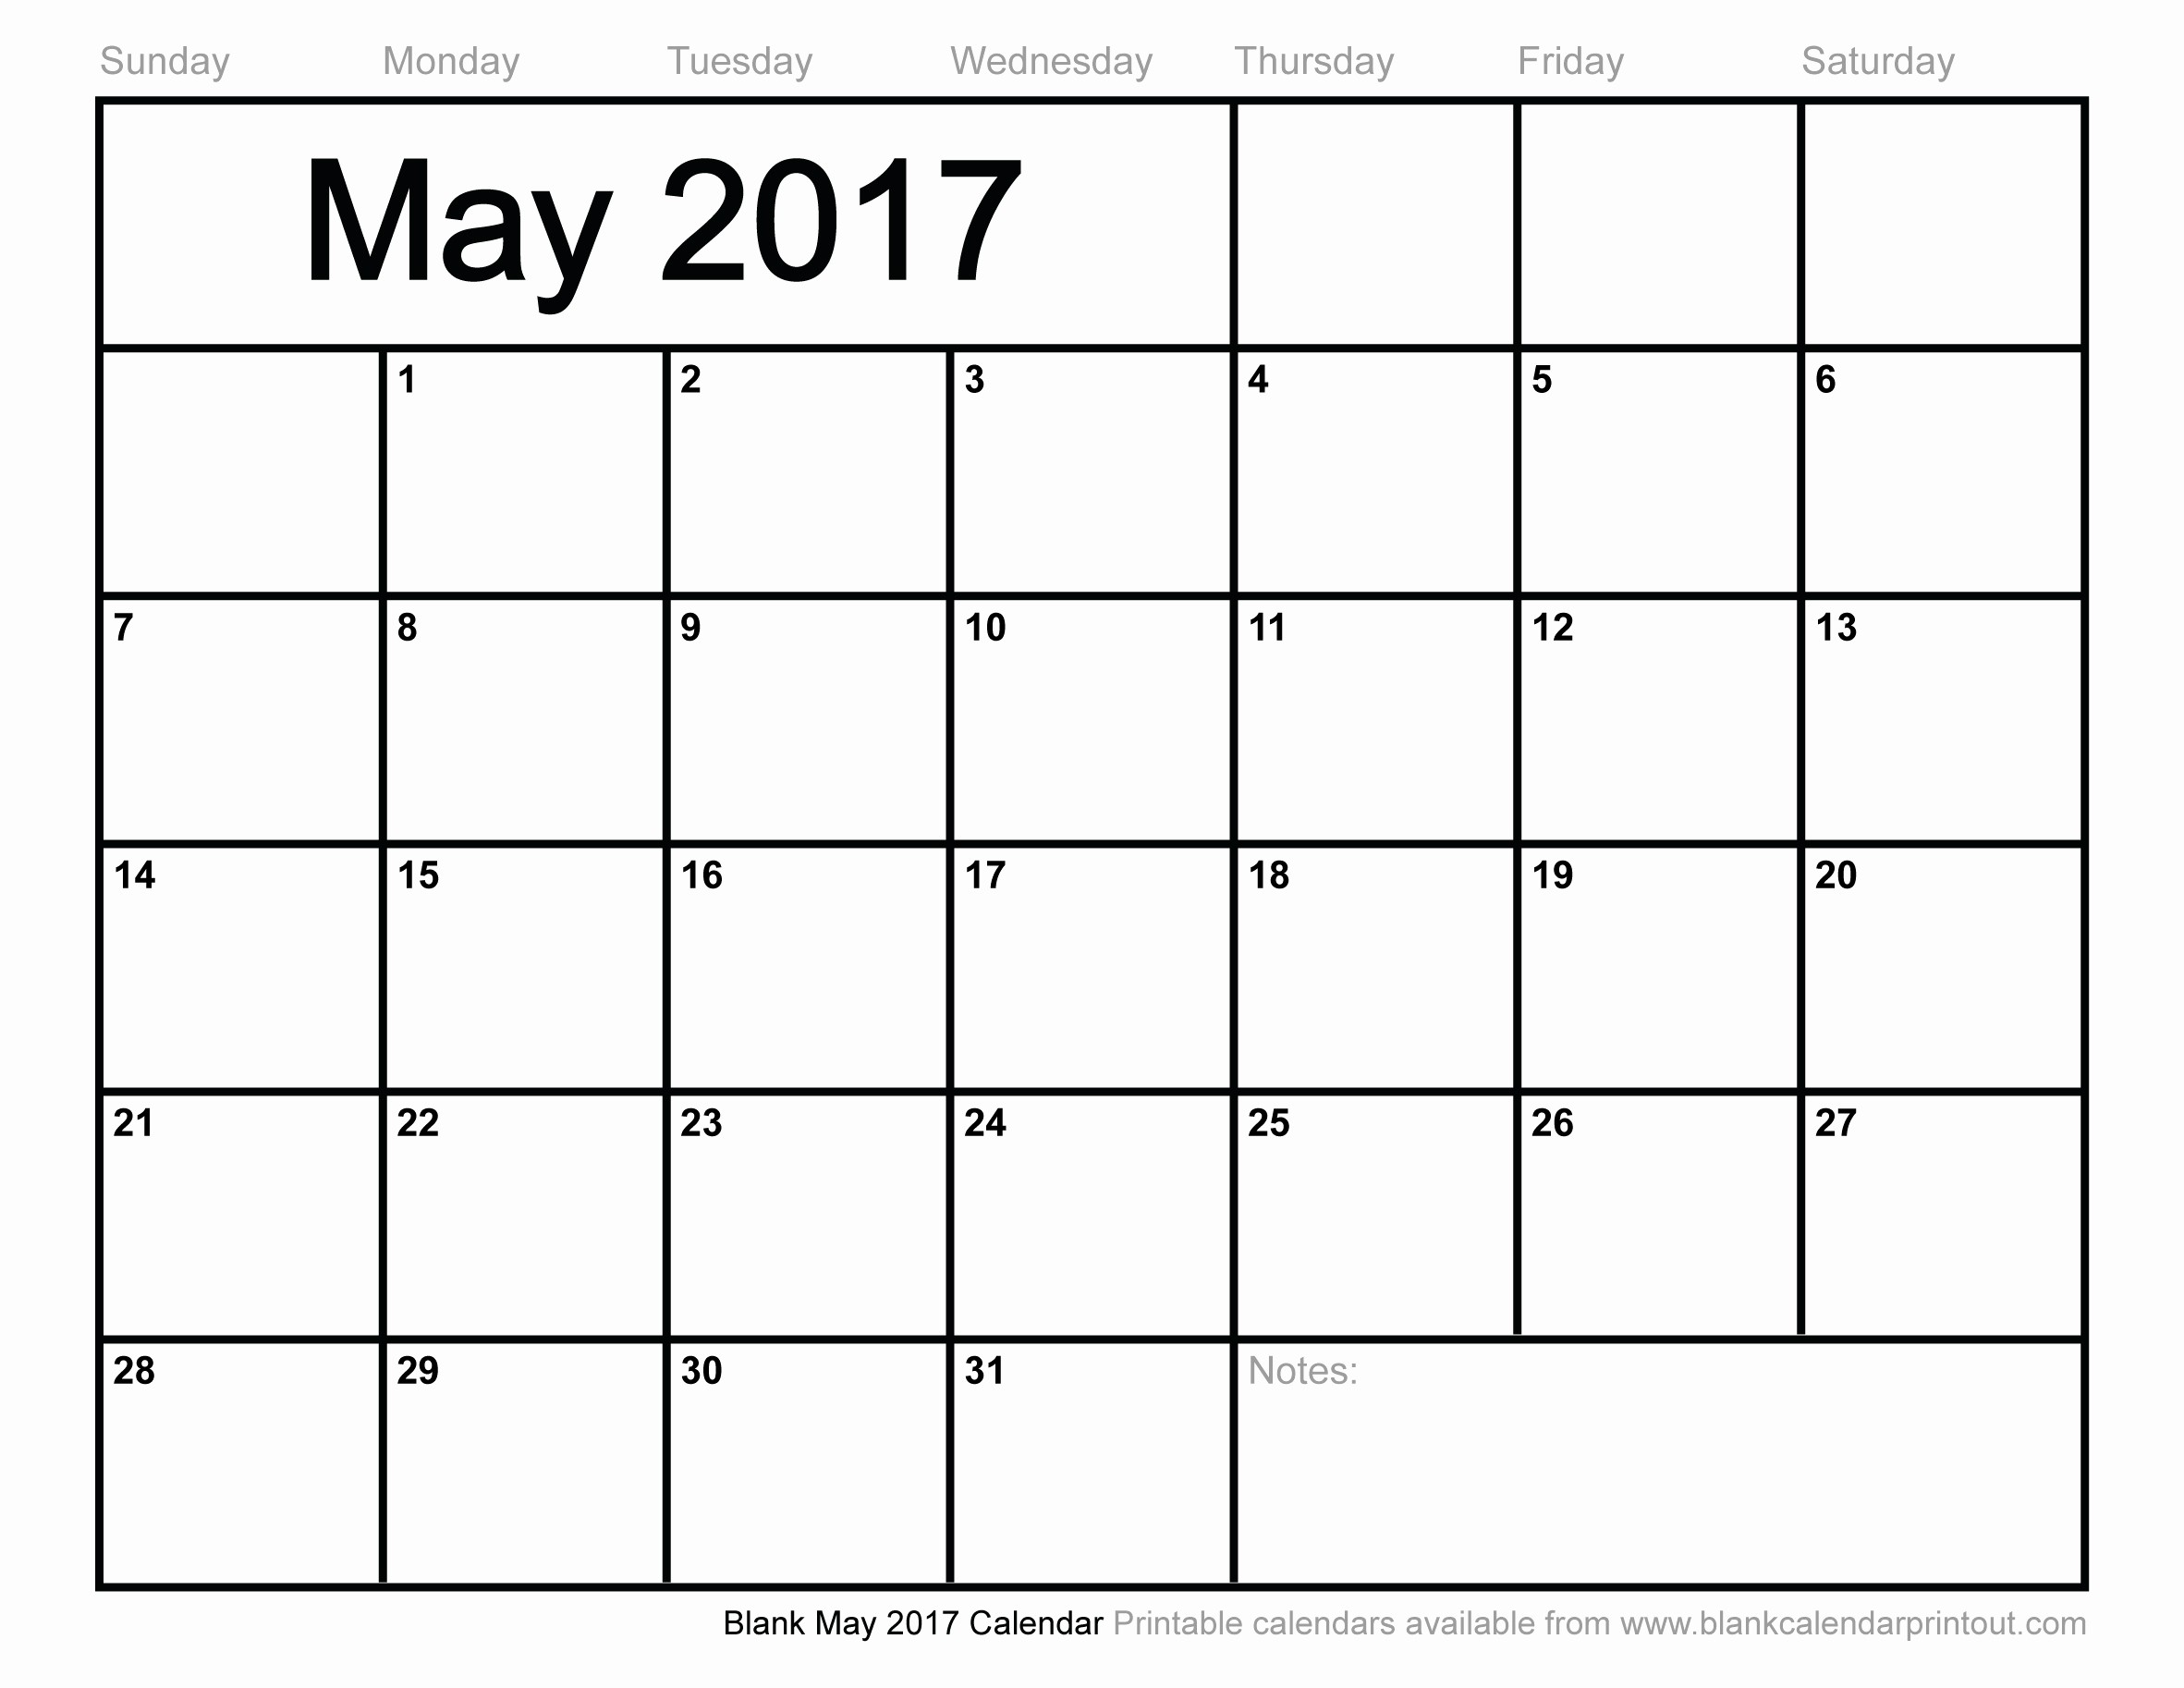 Blank Monthly Calendar 2017 Printable Luxury Blank May 2017 Calendar to Print